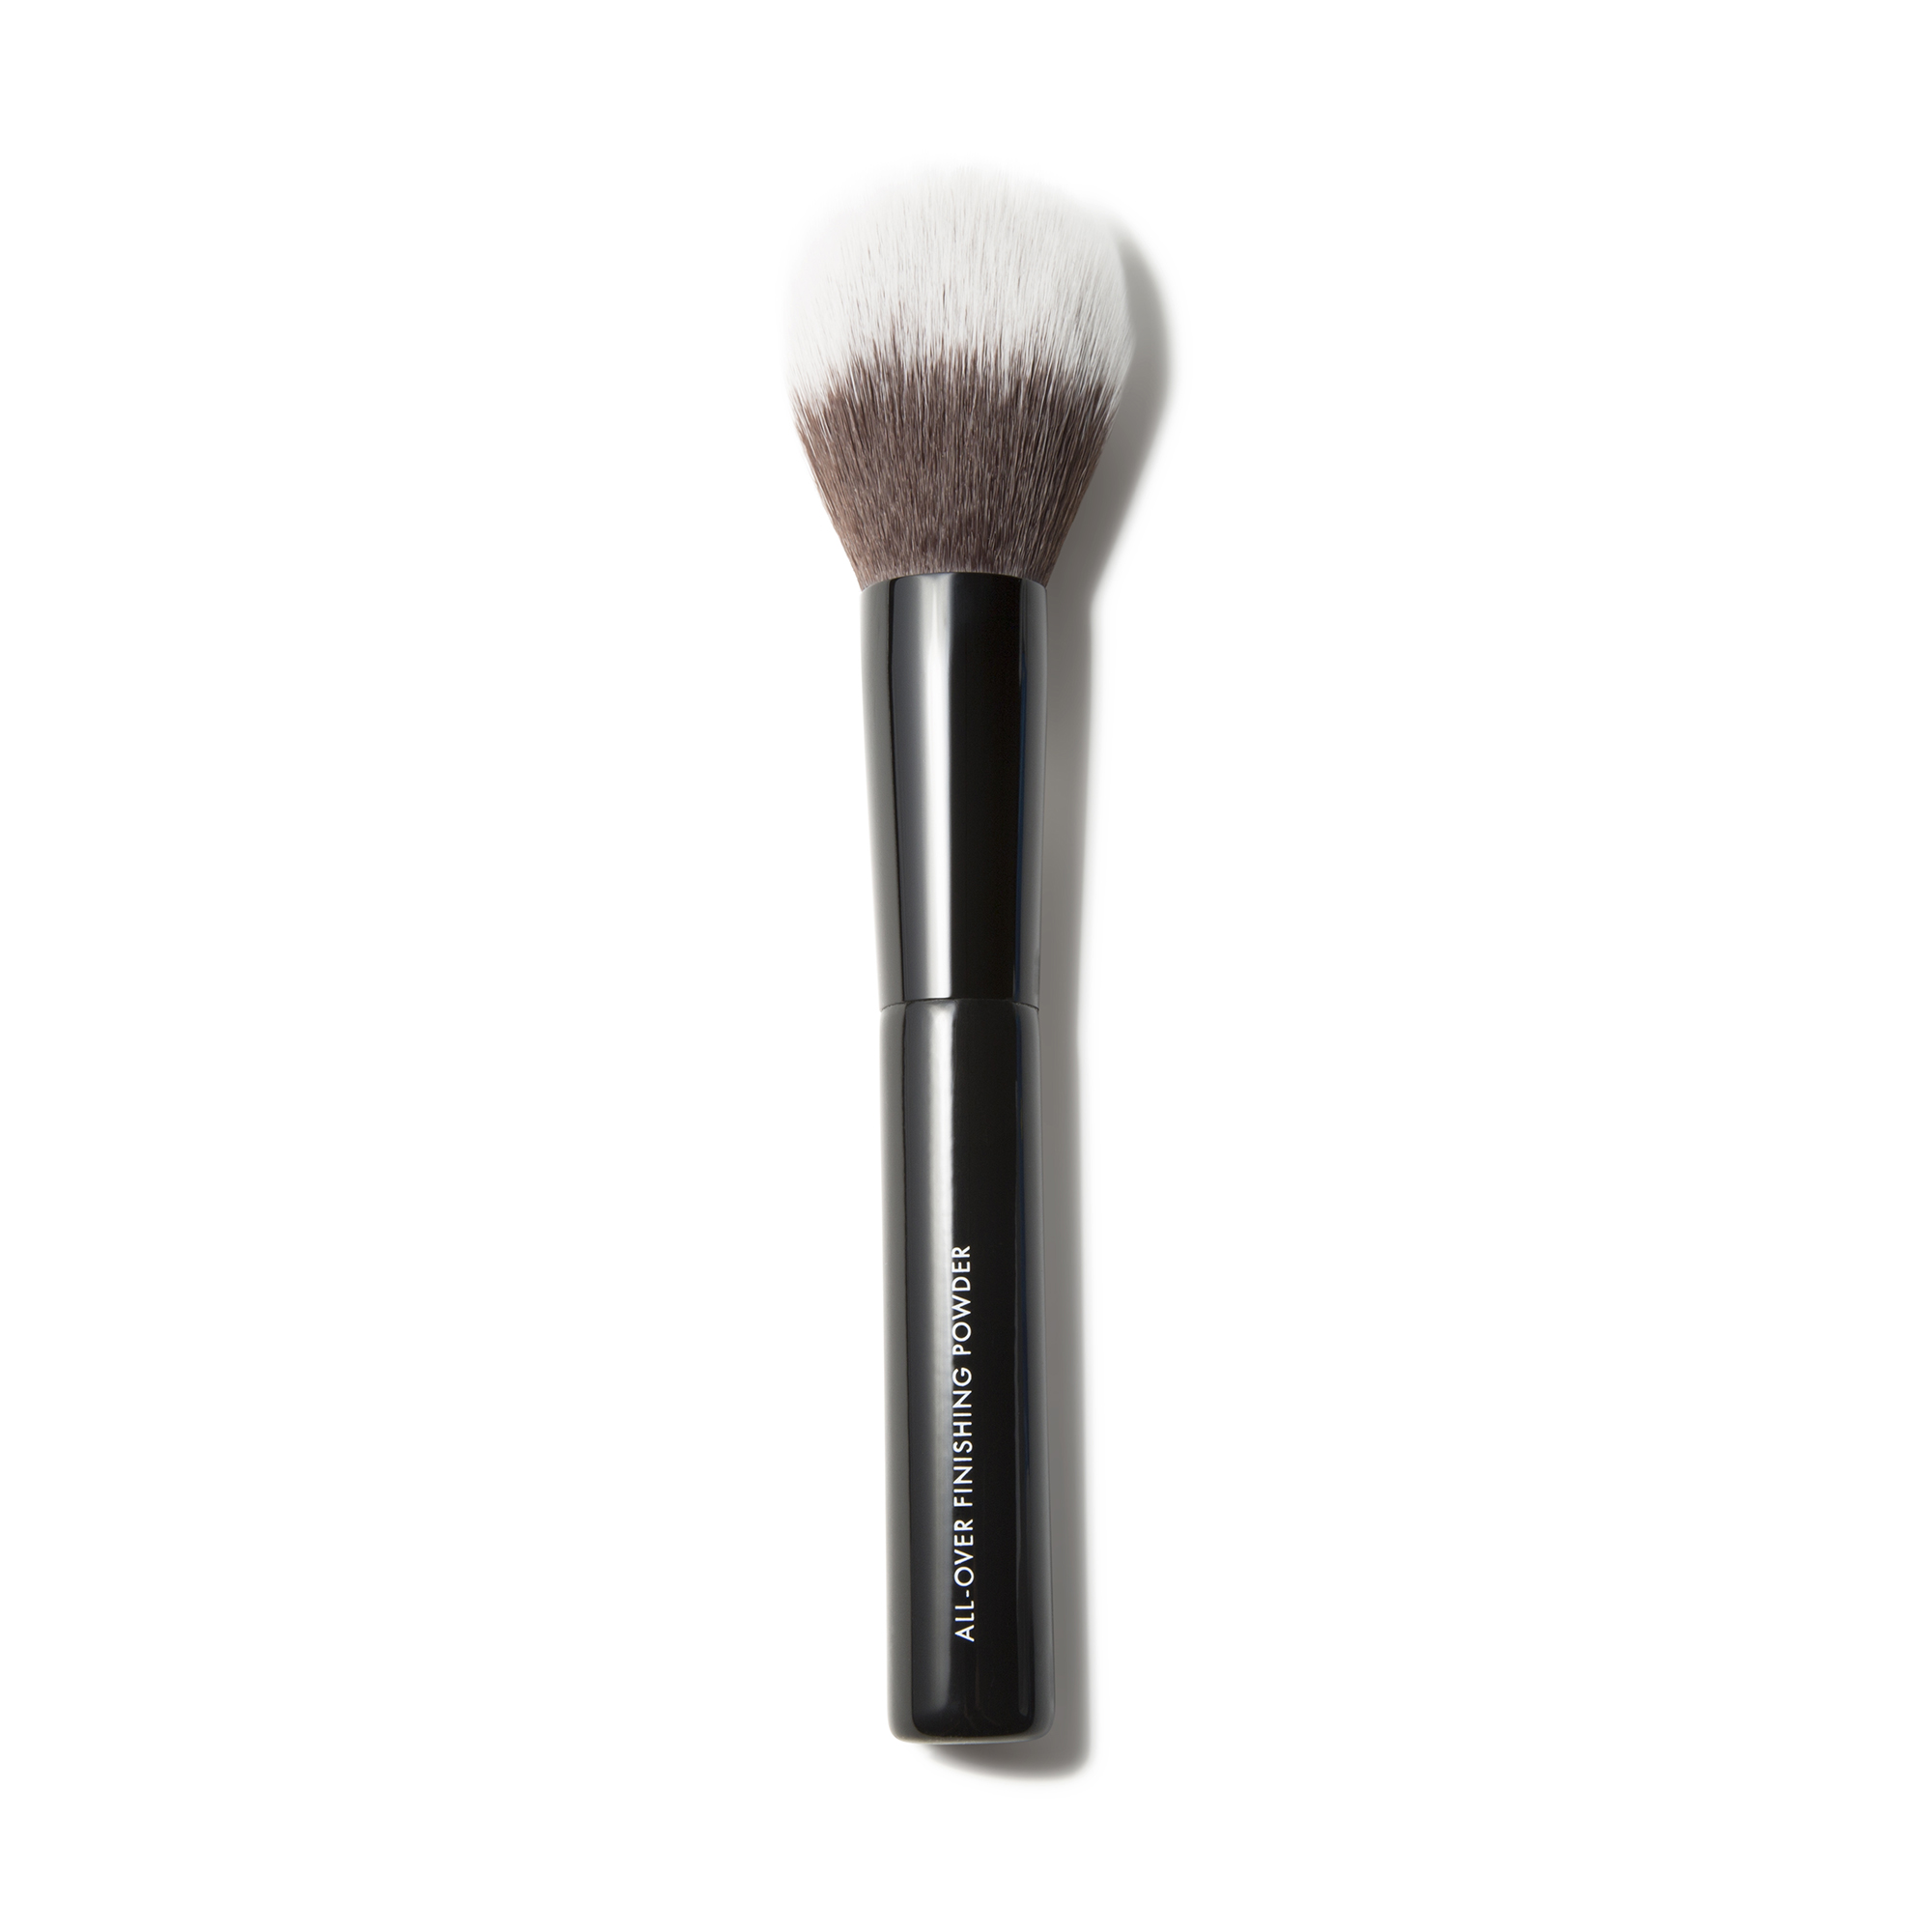 Image for Pro Perfect Setting Powder Brush from BeautyPie US